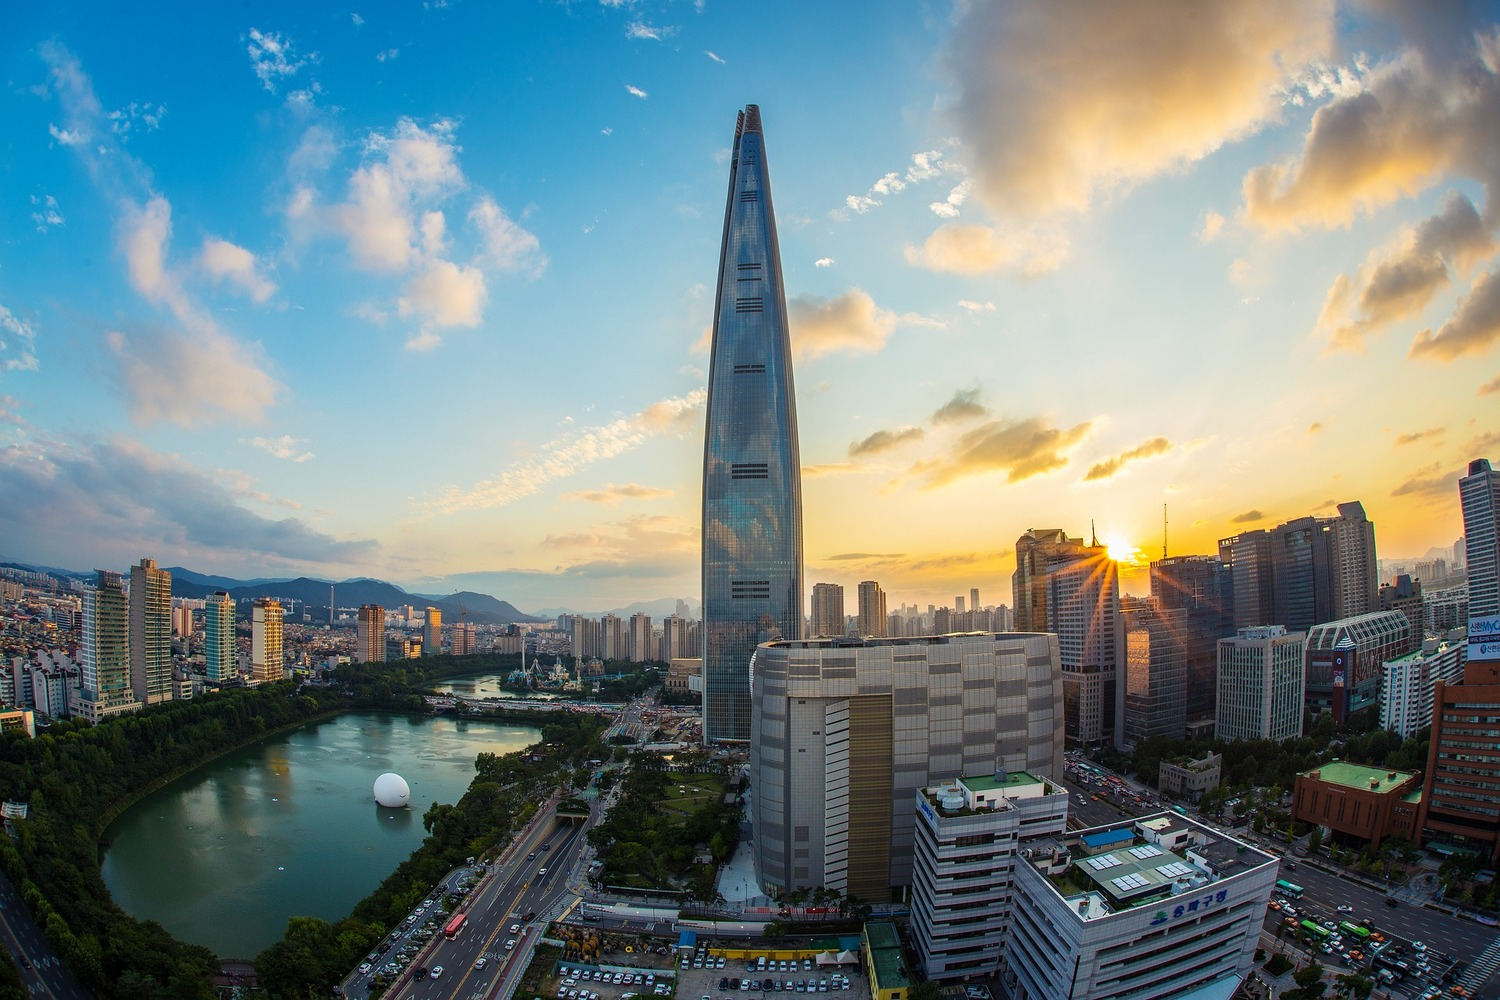 5.Lotte World Tower